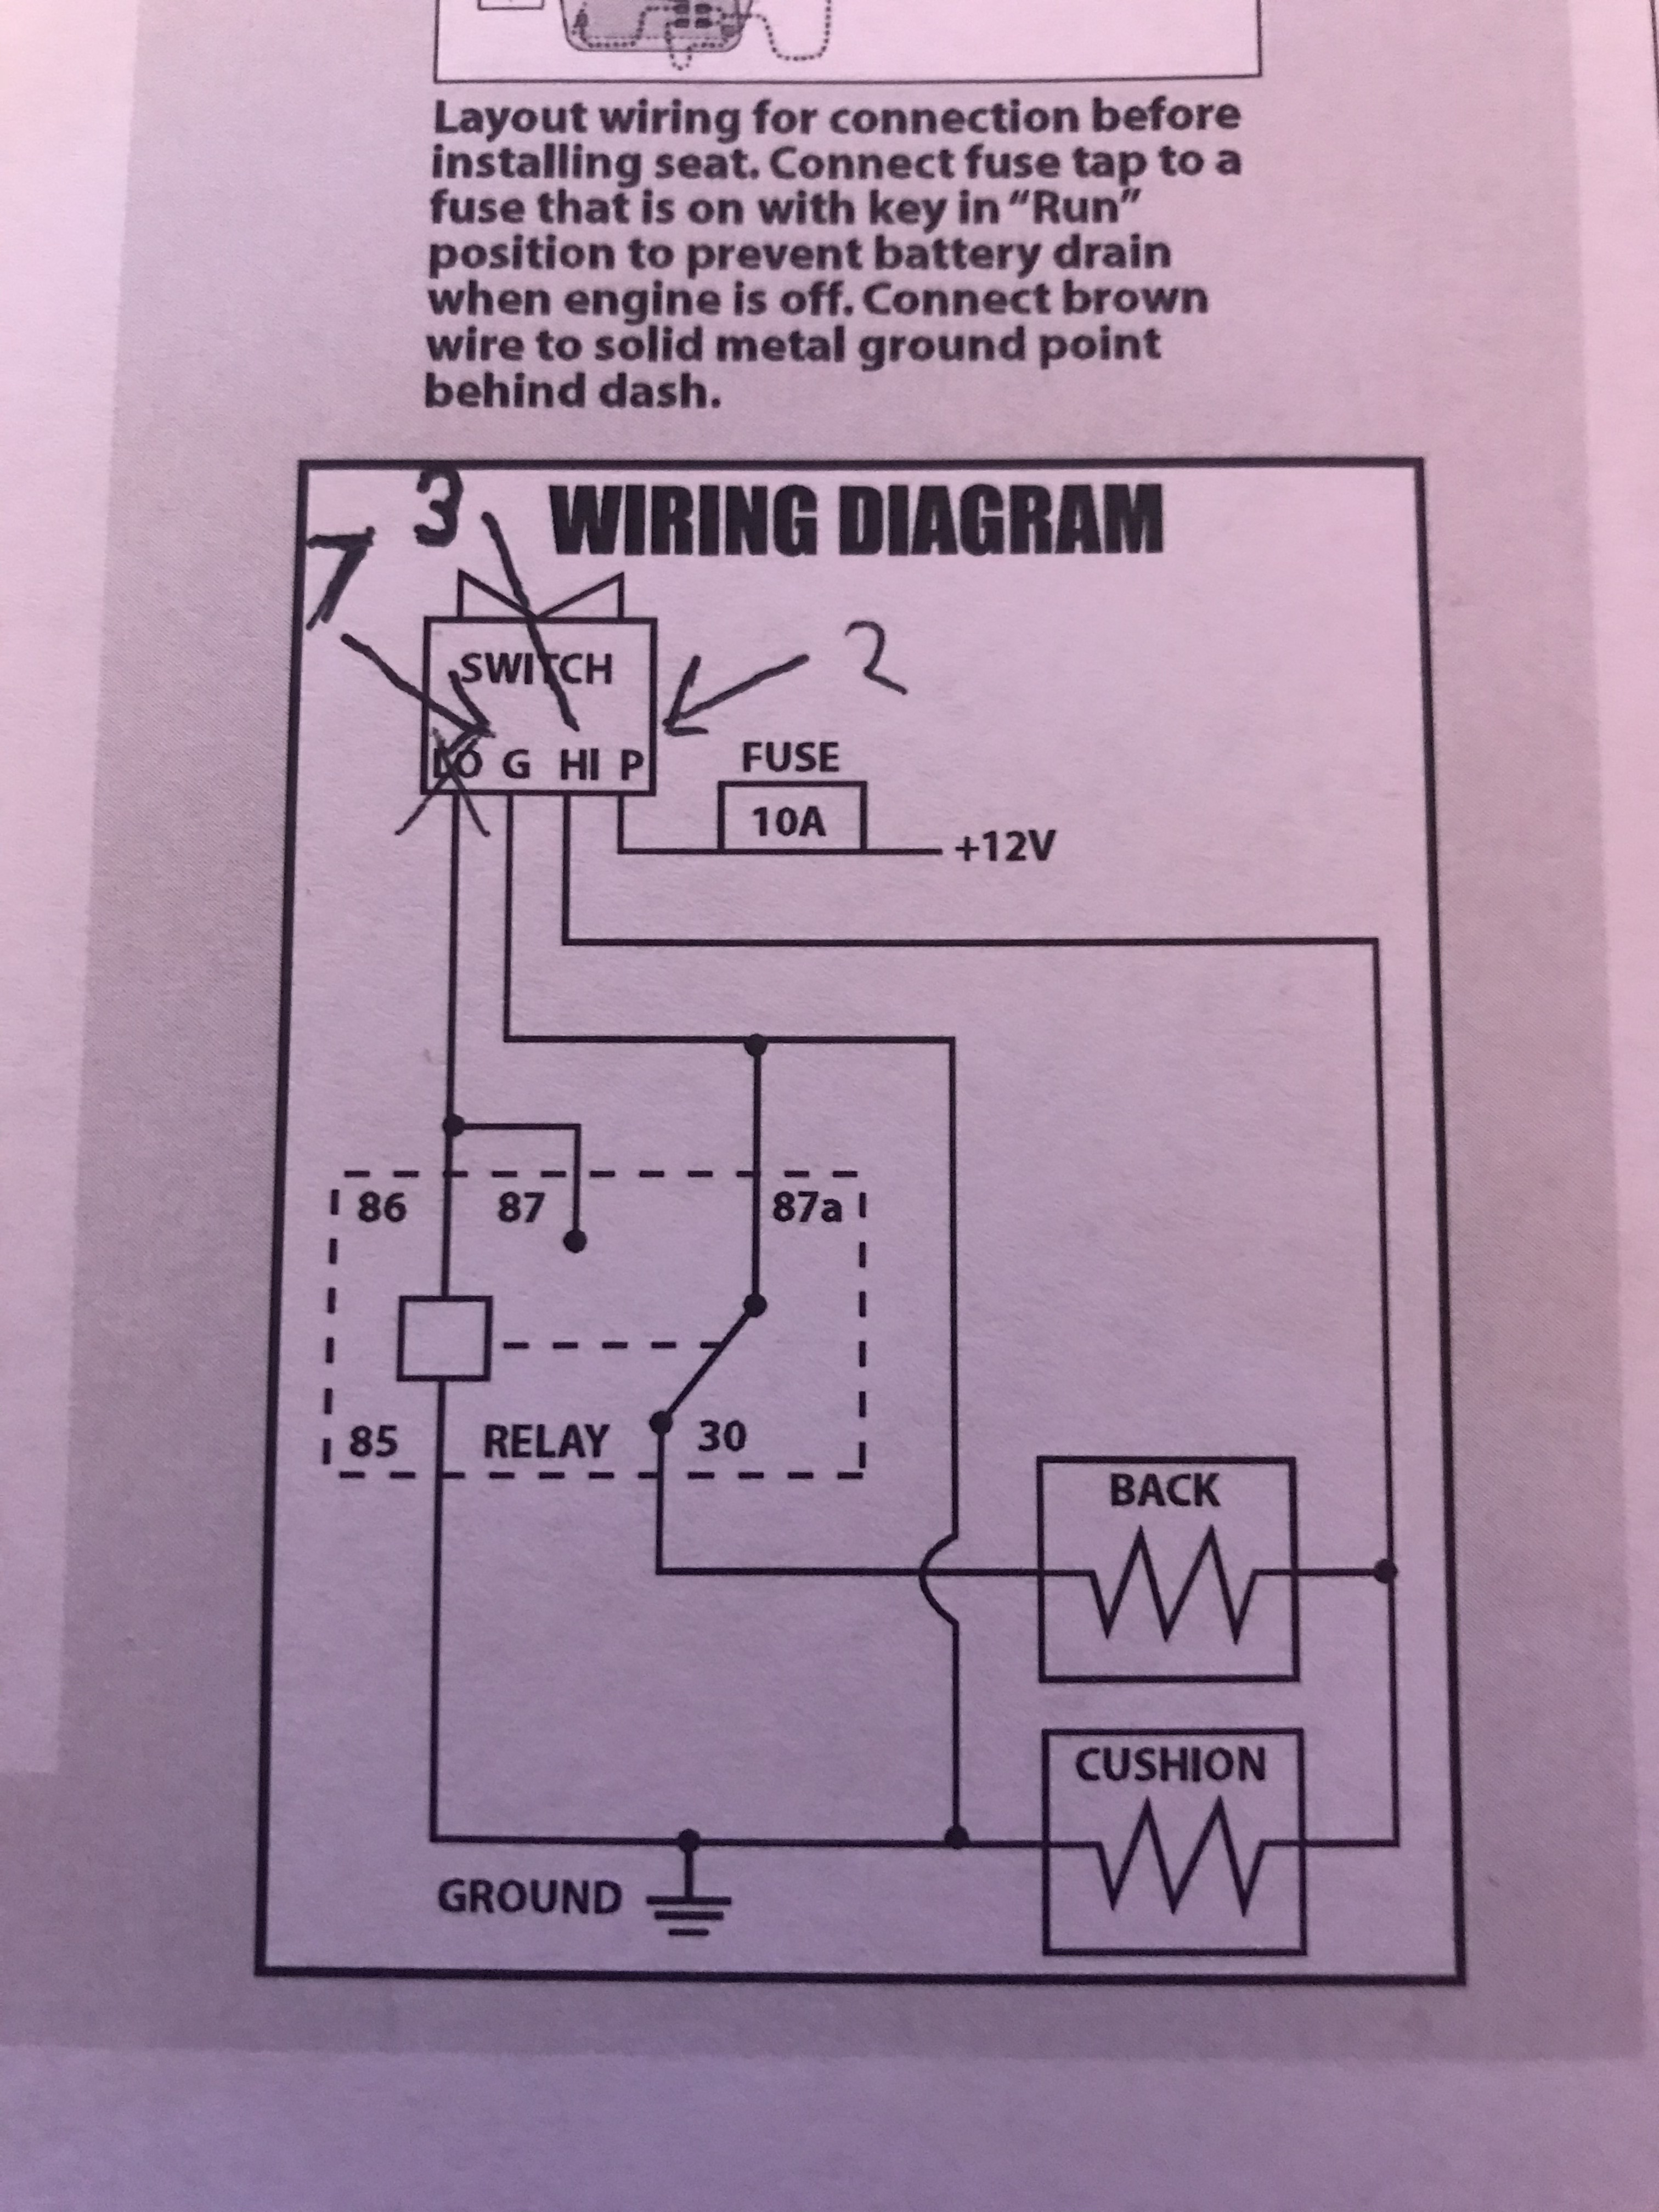 Wiring Help Please Heated Seats. Name 132 Views 416 Size 169 Mb. Seat. Heated Seat Relay Wiring Diagram At Scoala.co